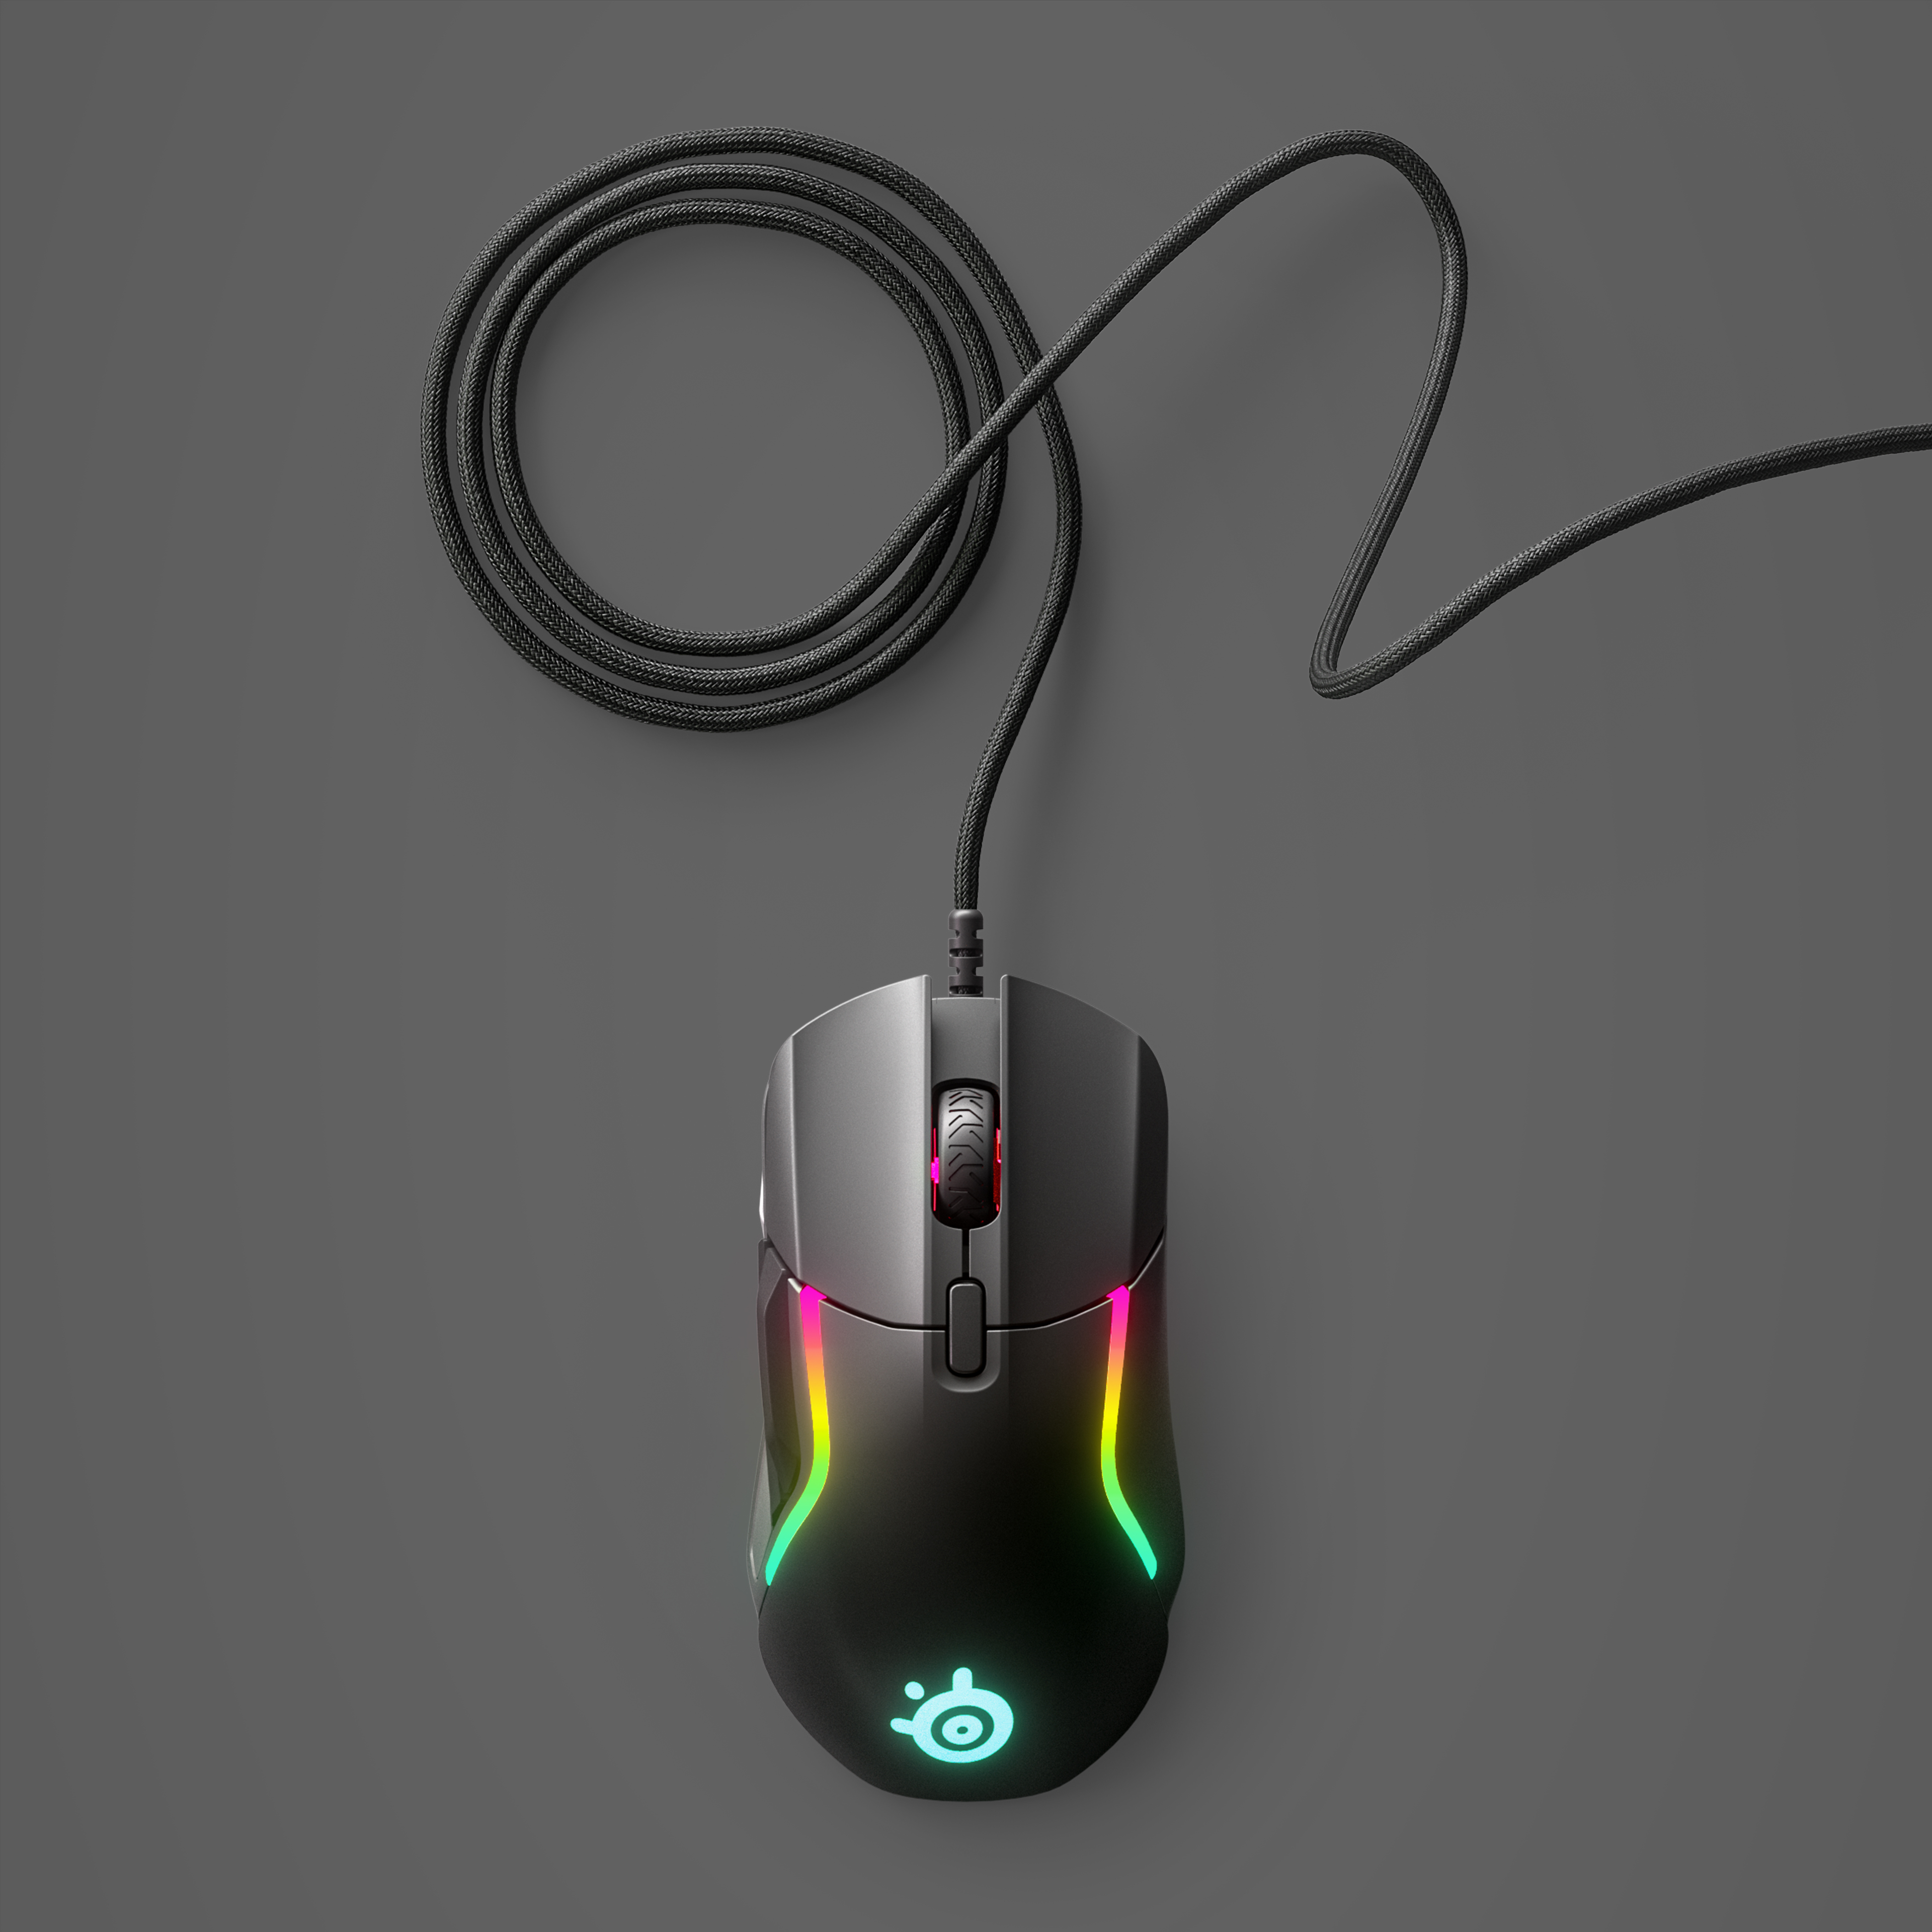 Rival 5 gaming mouse colors